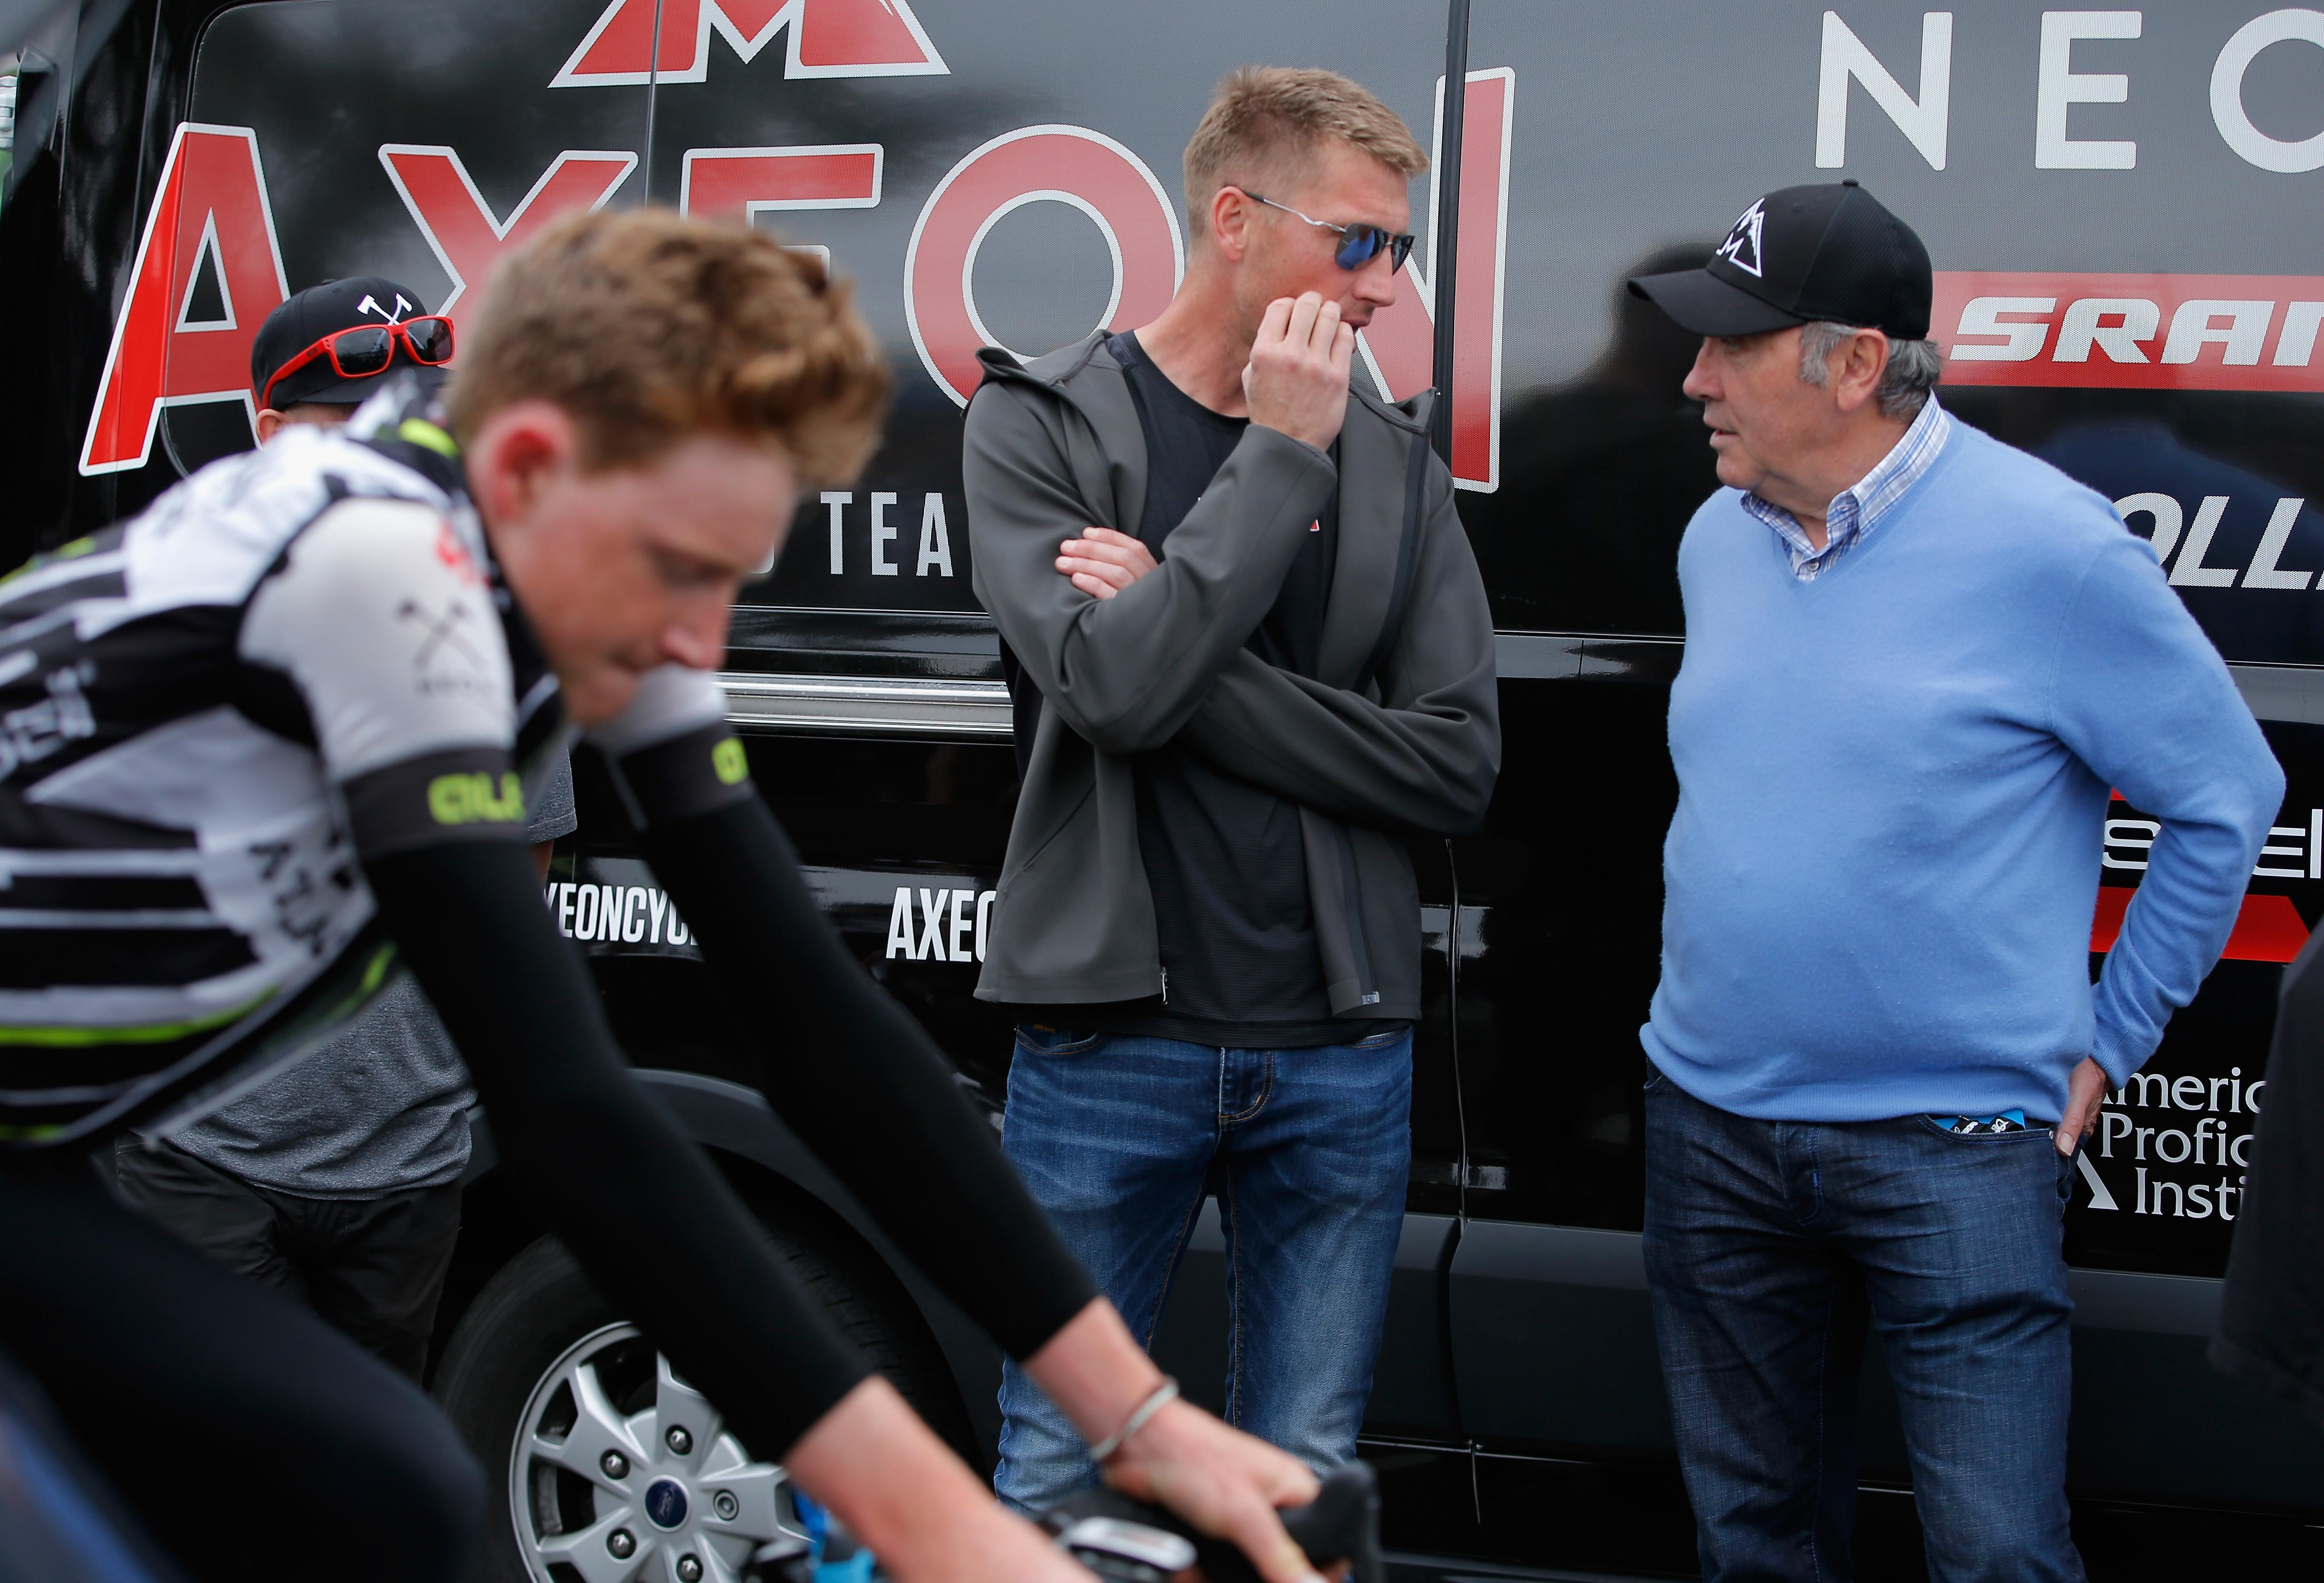 Developing future cycling stars is harder than ever, admits Merckx